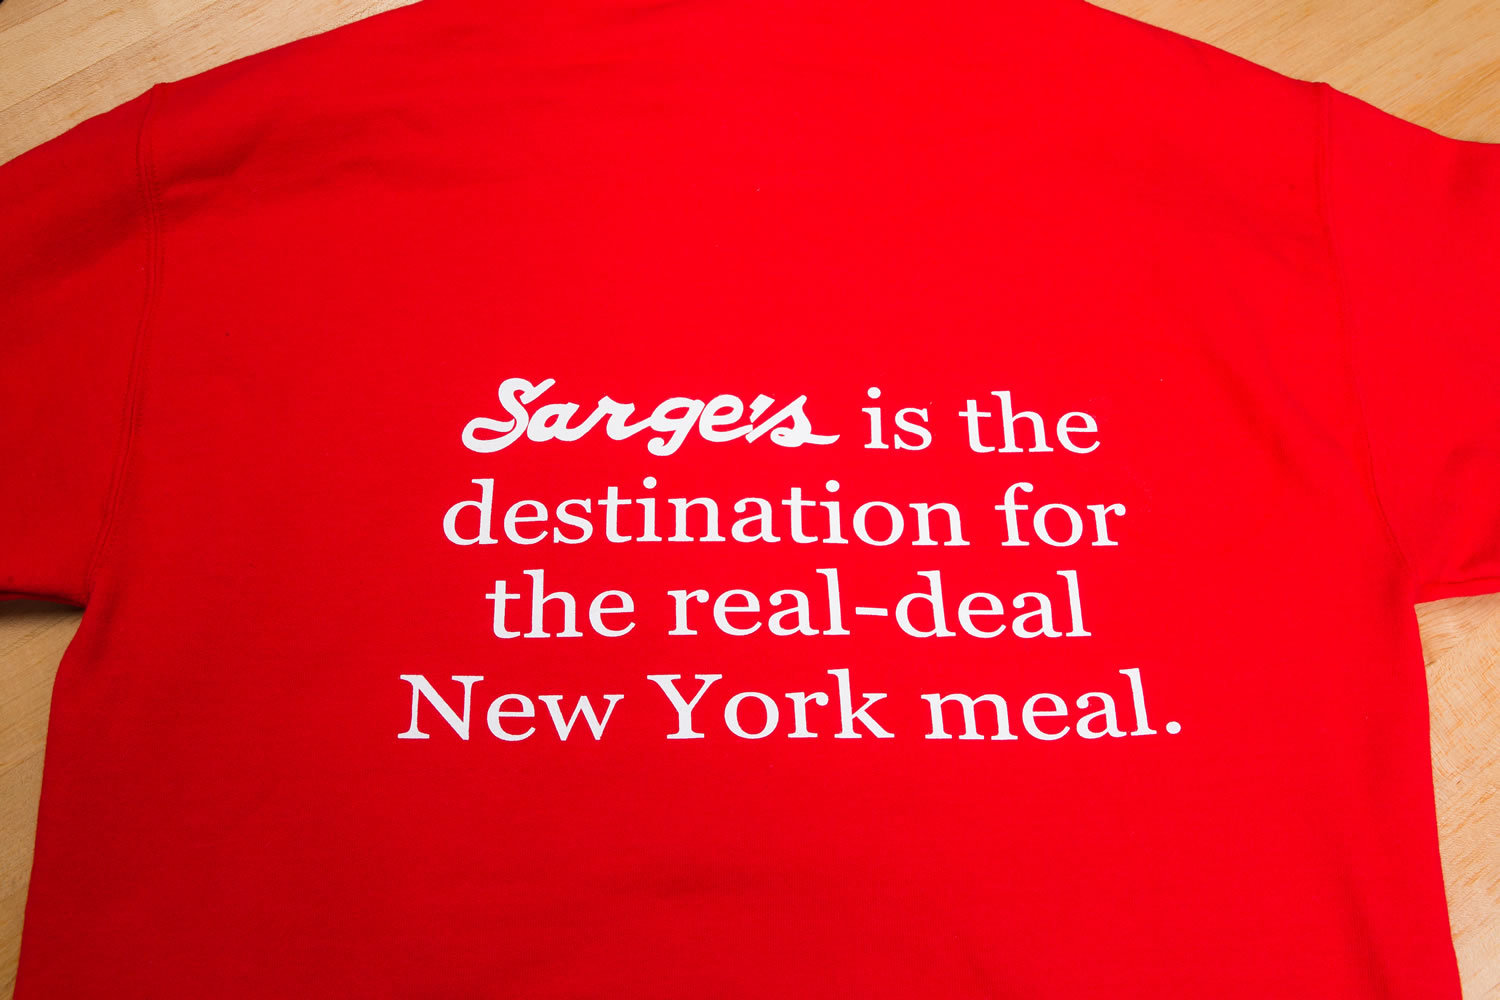 Sarge's is the destination for the real-deal New York meal!